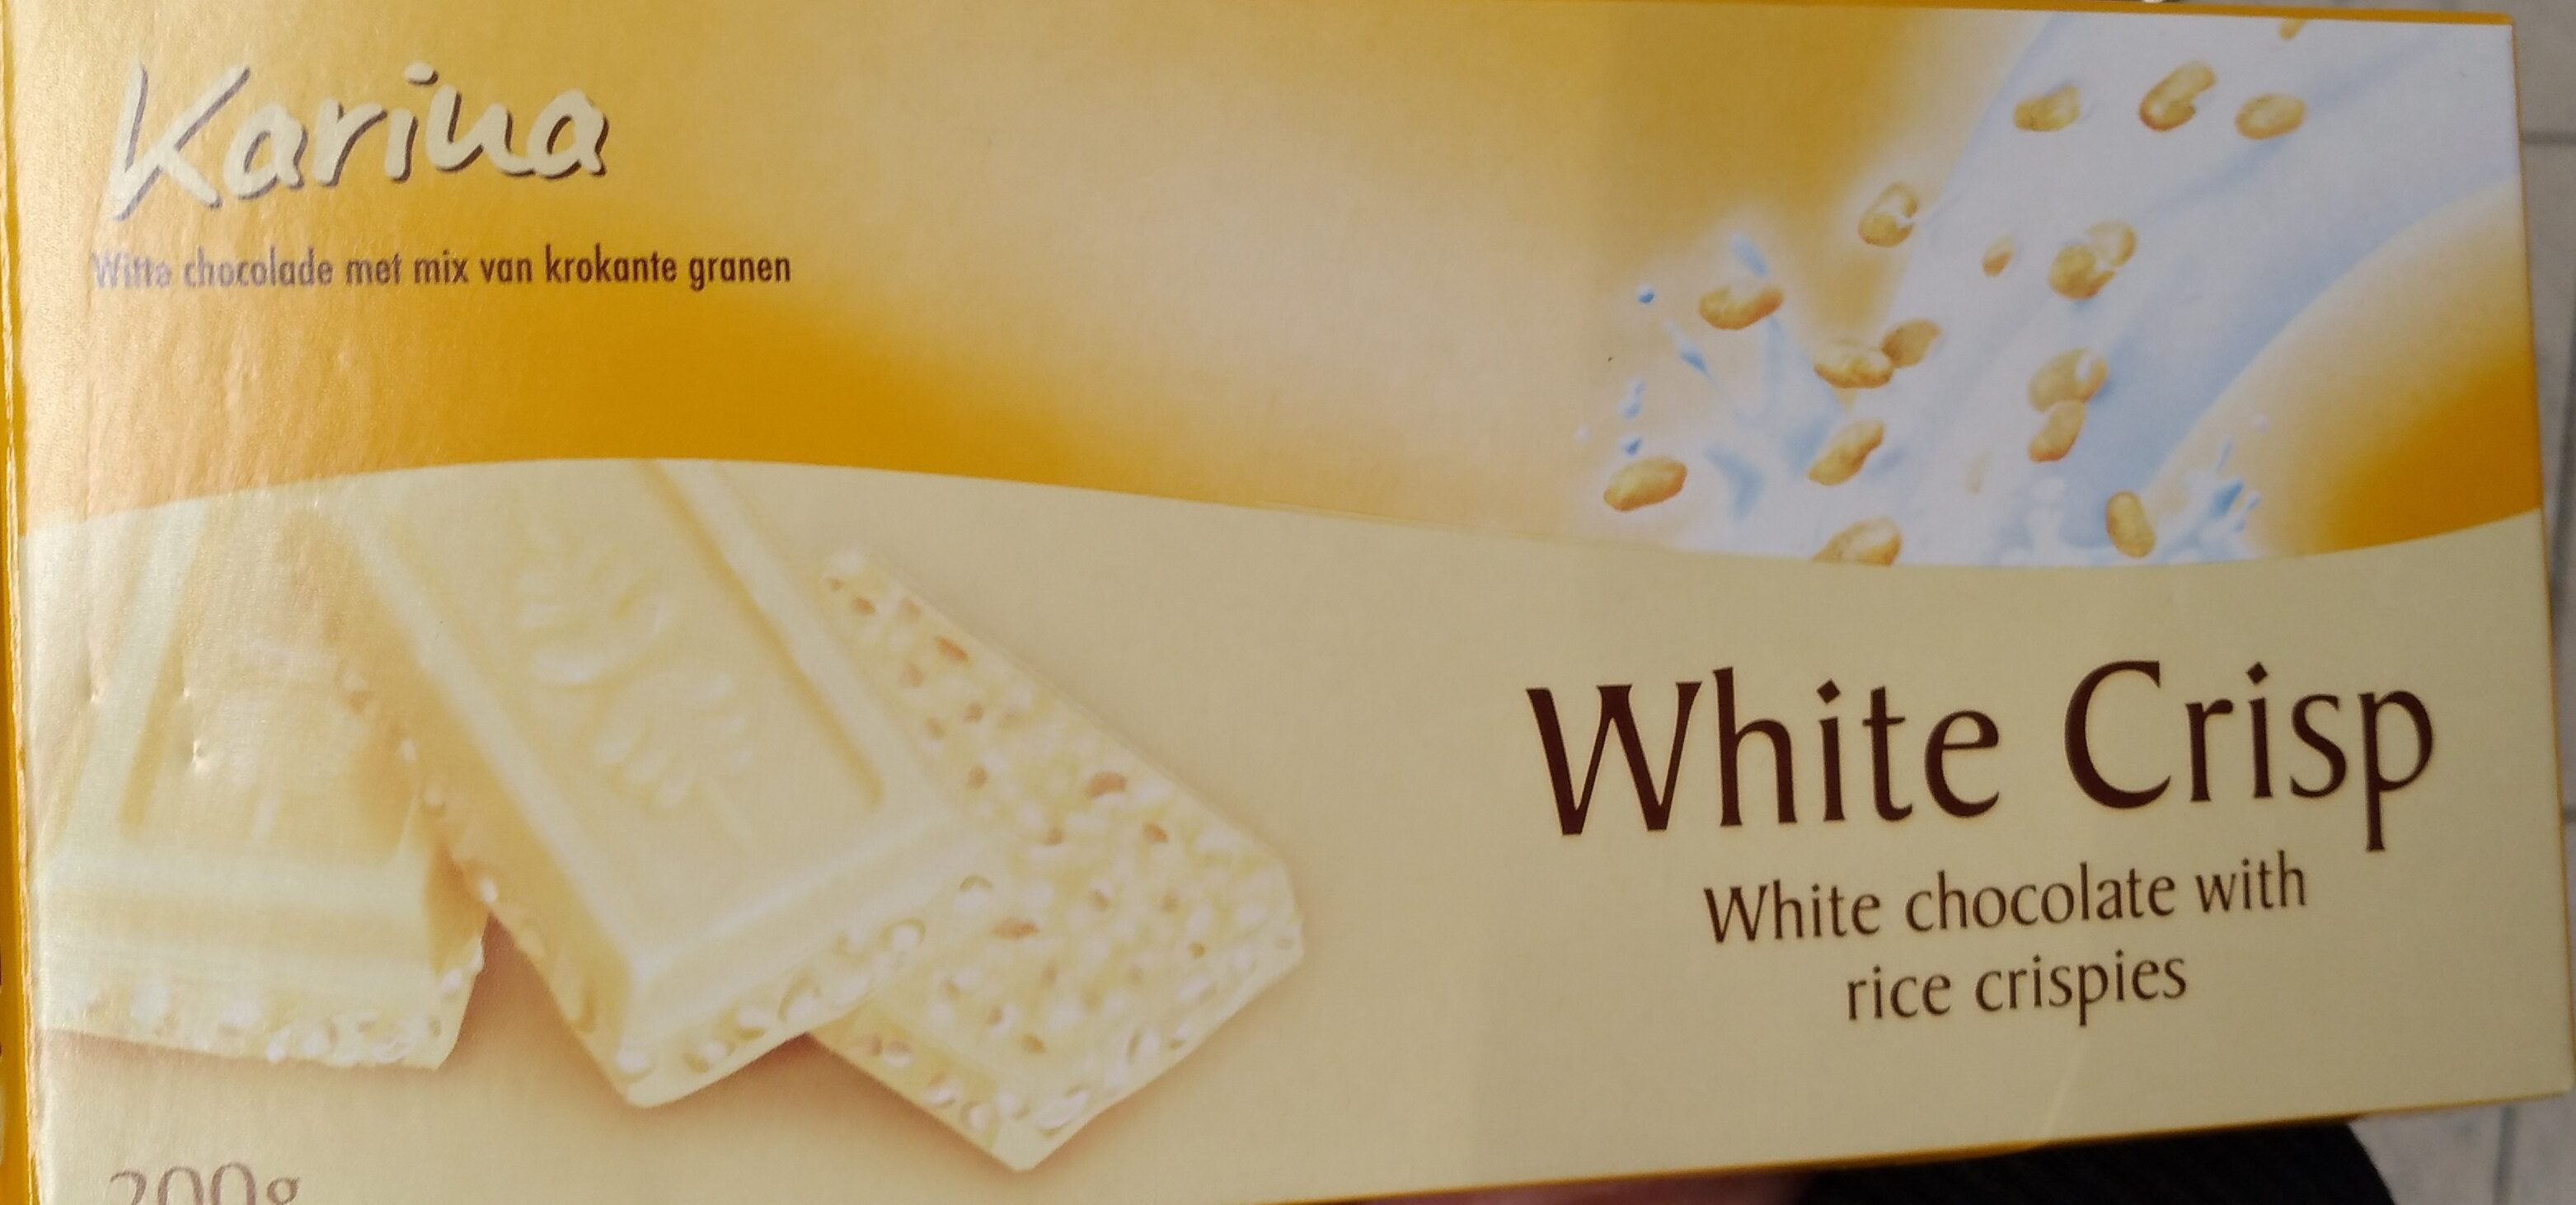 White chocolate with rice crispies - Product - nl